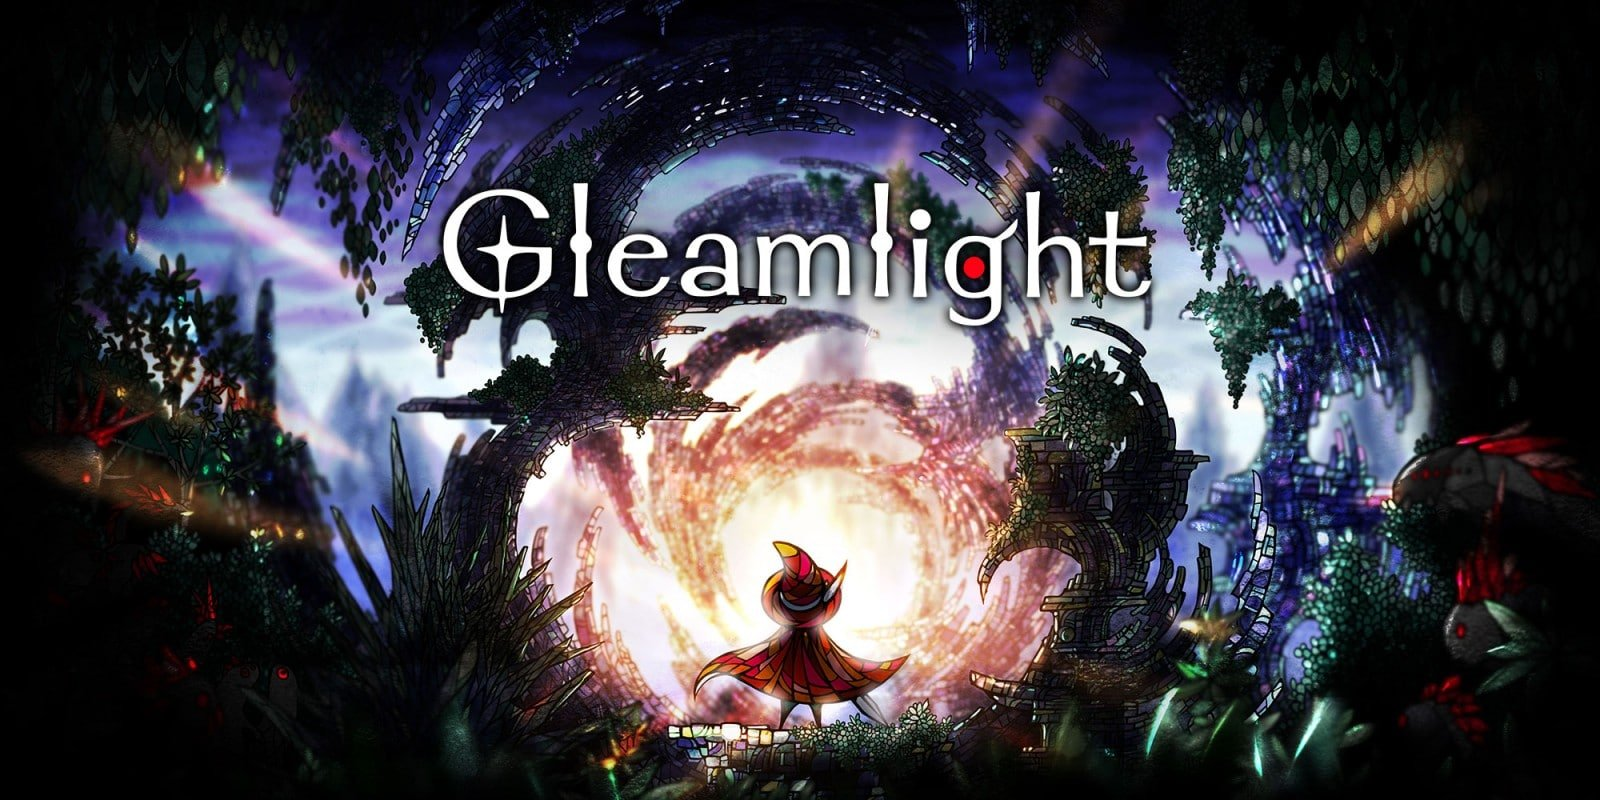 Gleamlight devs – Still in early development in response to Hollow Knight comparison